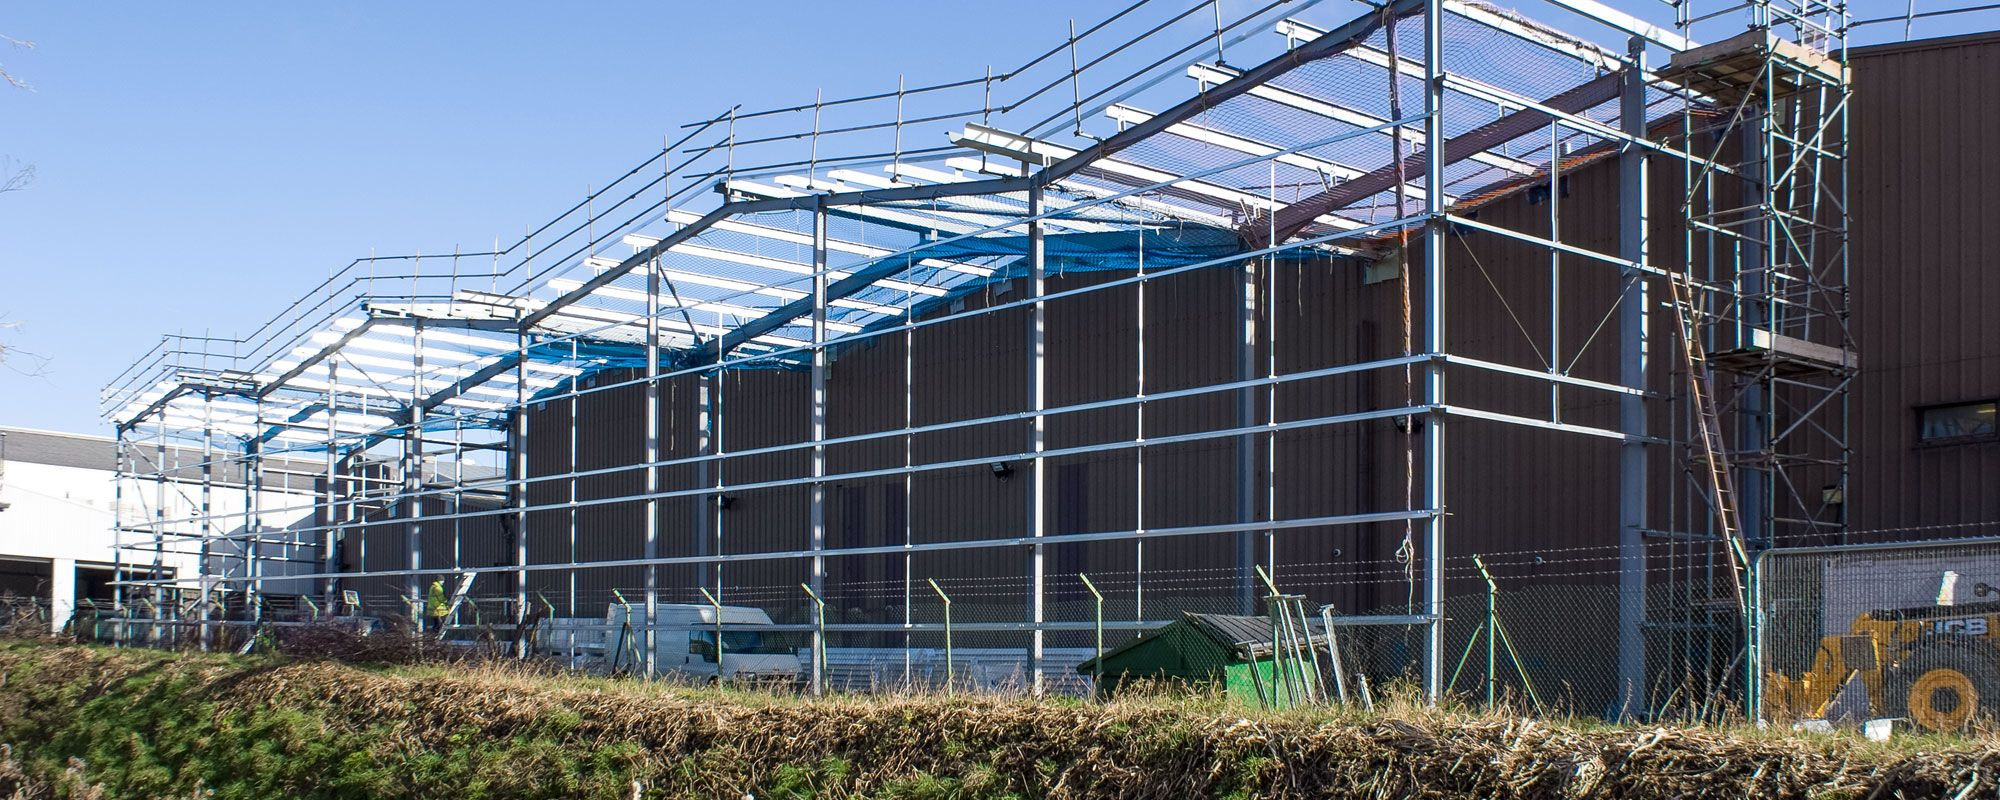 Building structure being erected on Wrexham Industrial Estate